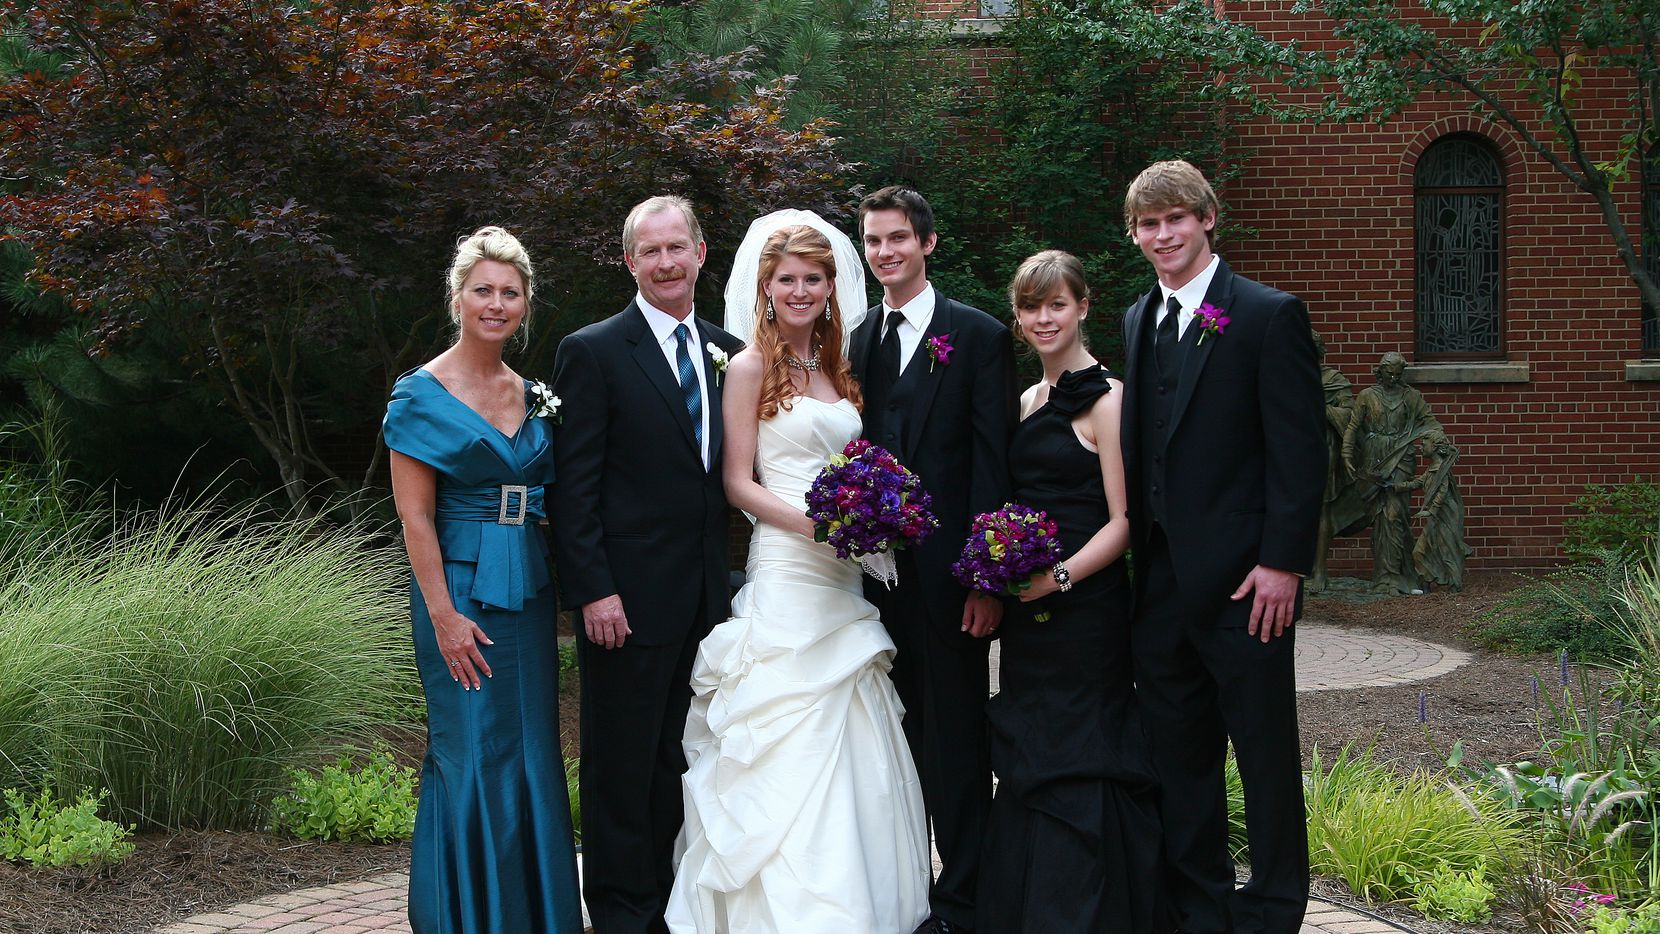 Taken in July 2010, at daughter Jenna's wedding. From left to right, it's Bekki Nill, Jim Nill, Jenna, son-in-law Zack, daughter Kristin and son Trevor. Jenna is 26, Kristin 20 and Trevor 22. Trevor played hockey at Michigan State for four seasons